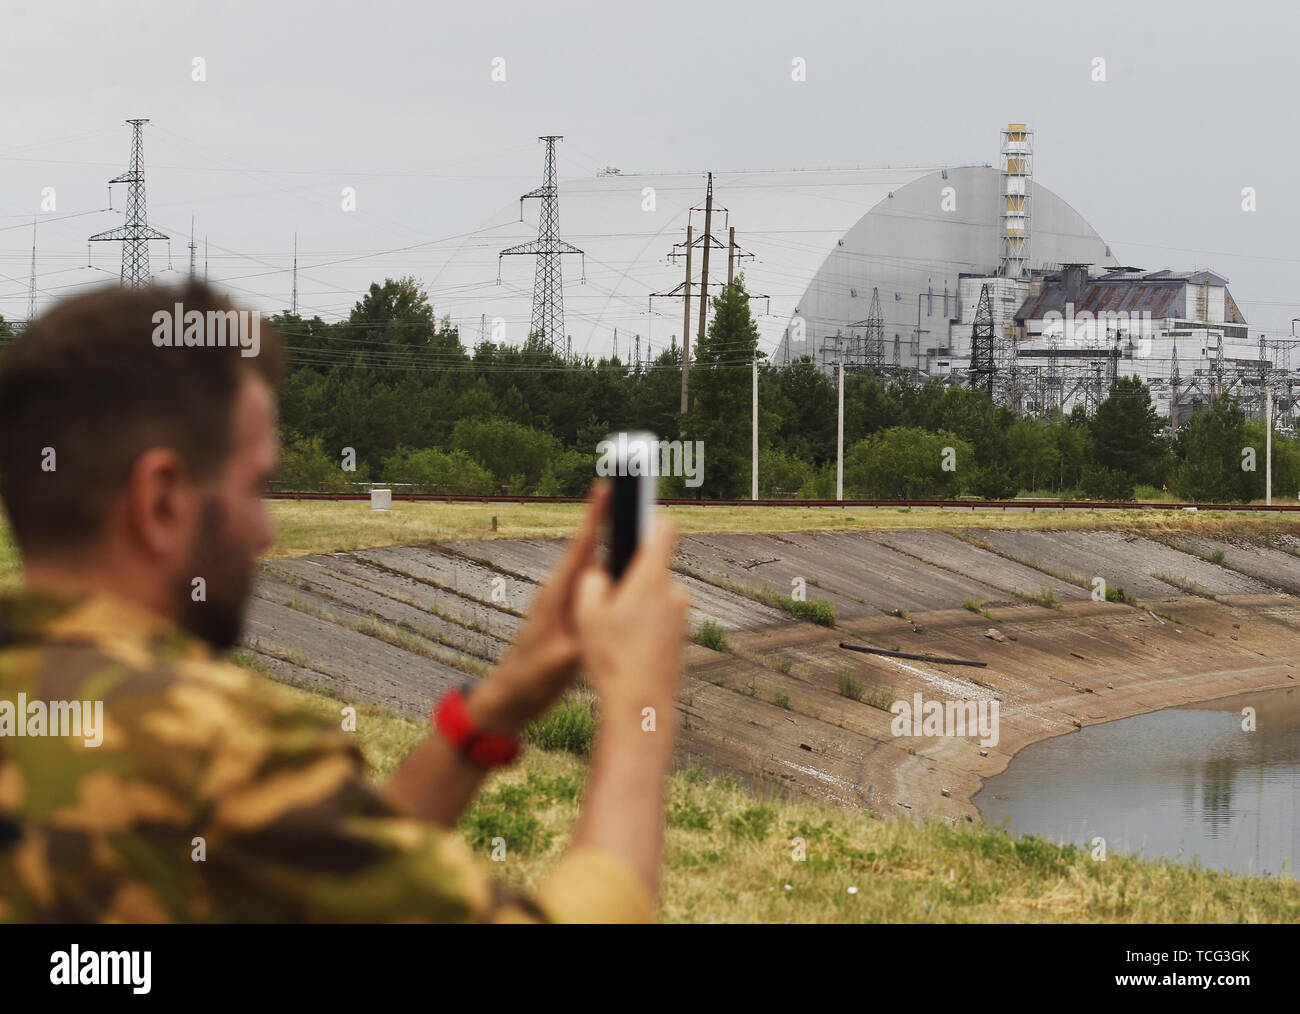 Kiev, Ukraine. 7th June, 2019. A visitor takes a photo in front the New Safe Confinement over the fourth block of the Chernobyl nuclear plant in Chernobyl, Ukraine, on 7 June 2019. The success of a U.S. HBO's television miniseries 'Chernobyl' has renewed interest around the world on Ukraine's 1986 nuclear disaster. Tourism to Chernobyl has spiked 40% following the debut of the HBO series in May, tour agencies reported . Last April Ukrainians marked the 33rd anniversary of the Chernobyl disaster in then-Soviet Ukraine, caused by a botched safety test in the fourth reactor of the atomic plant - Stock Image